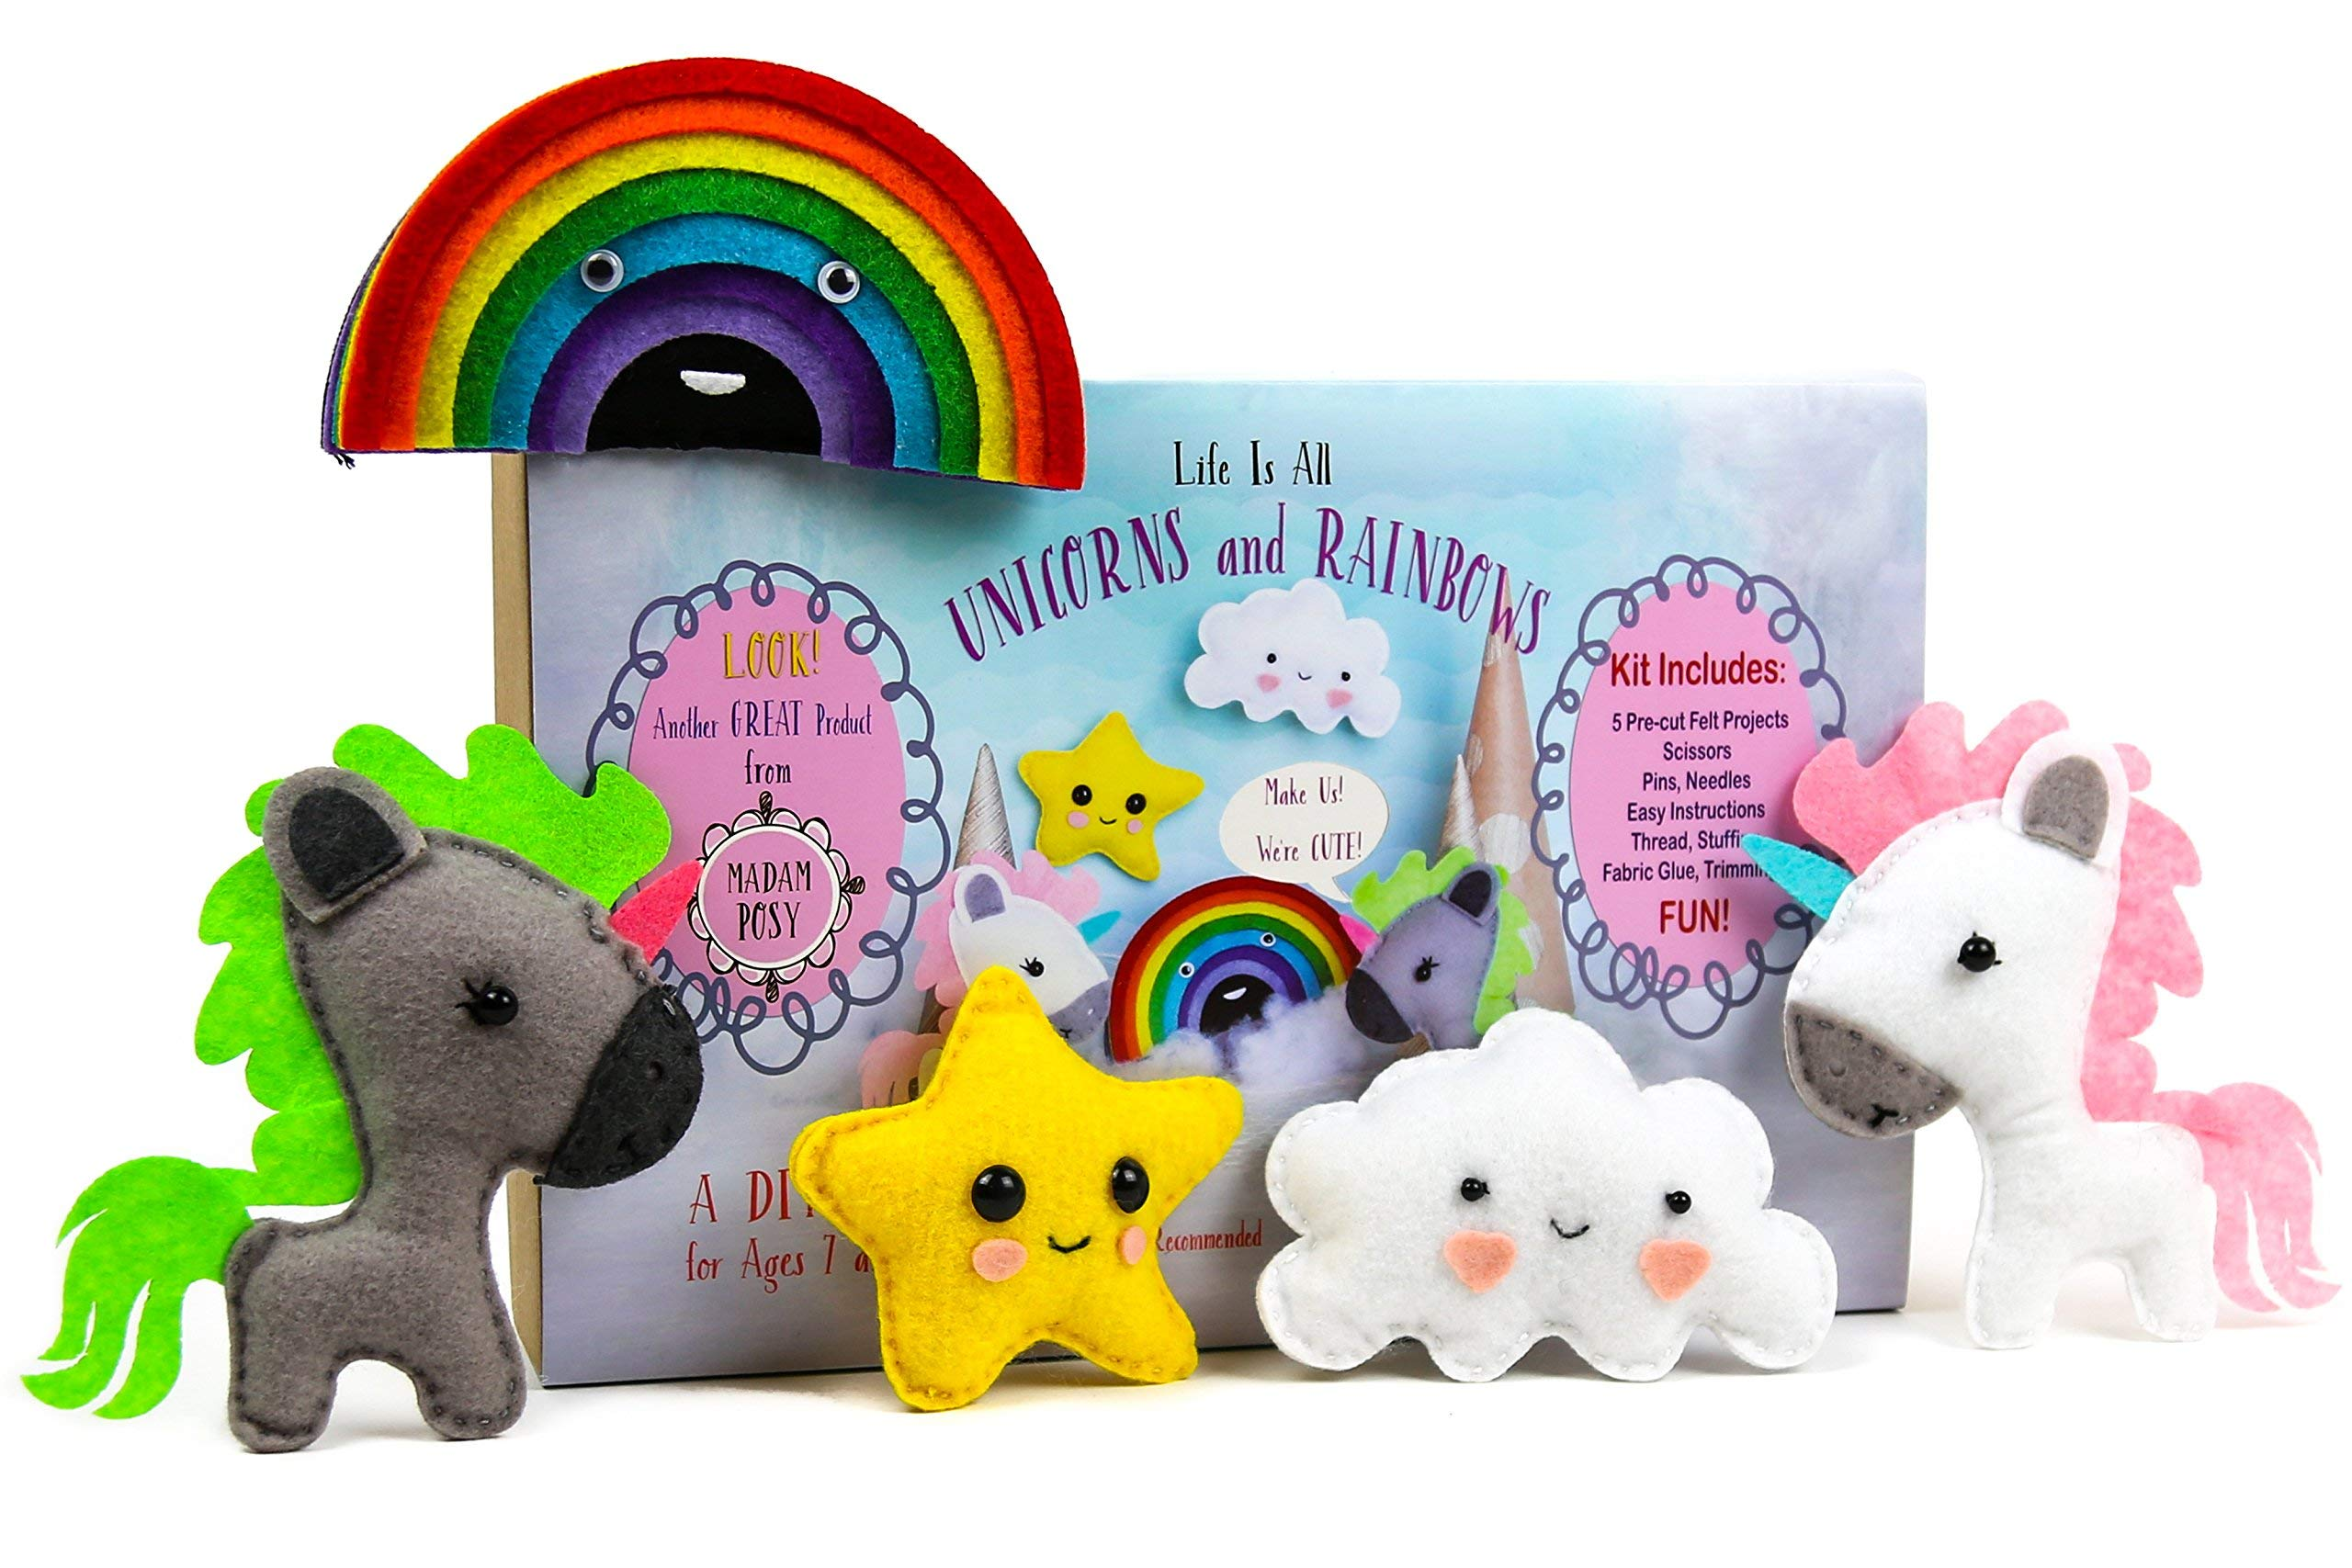 Madam Posy Design Sewing KIT for Kids: DIY Crafts Unicorns Stuffed Animal Sewing Crafts Kit for Girls Boys Kids Age 6-12 by Madam Posy Design